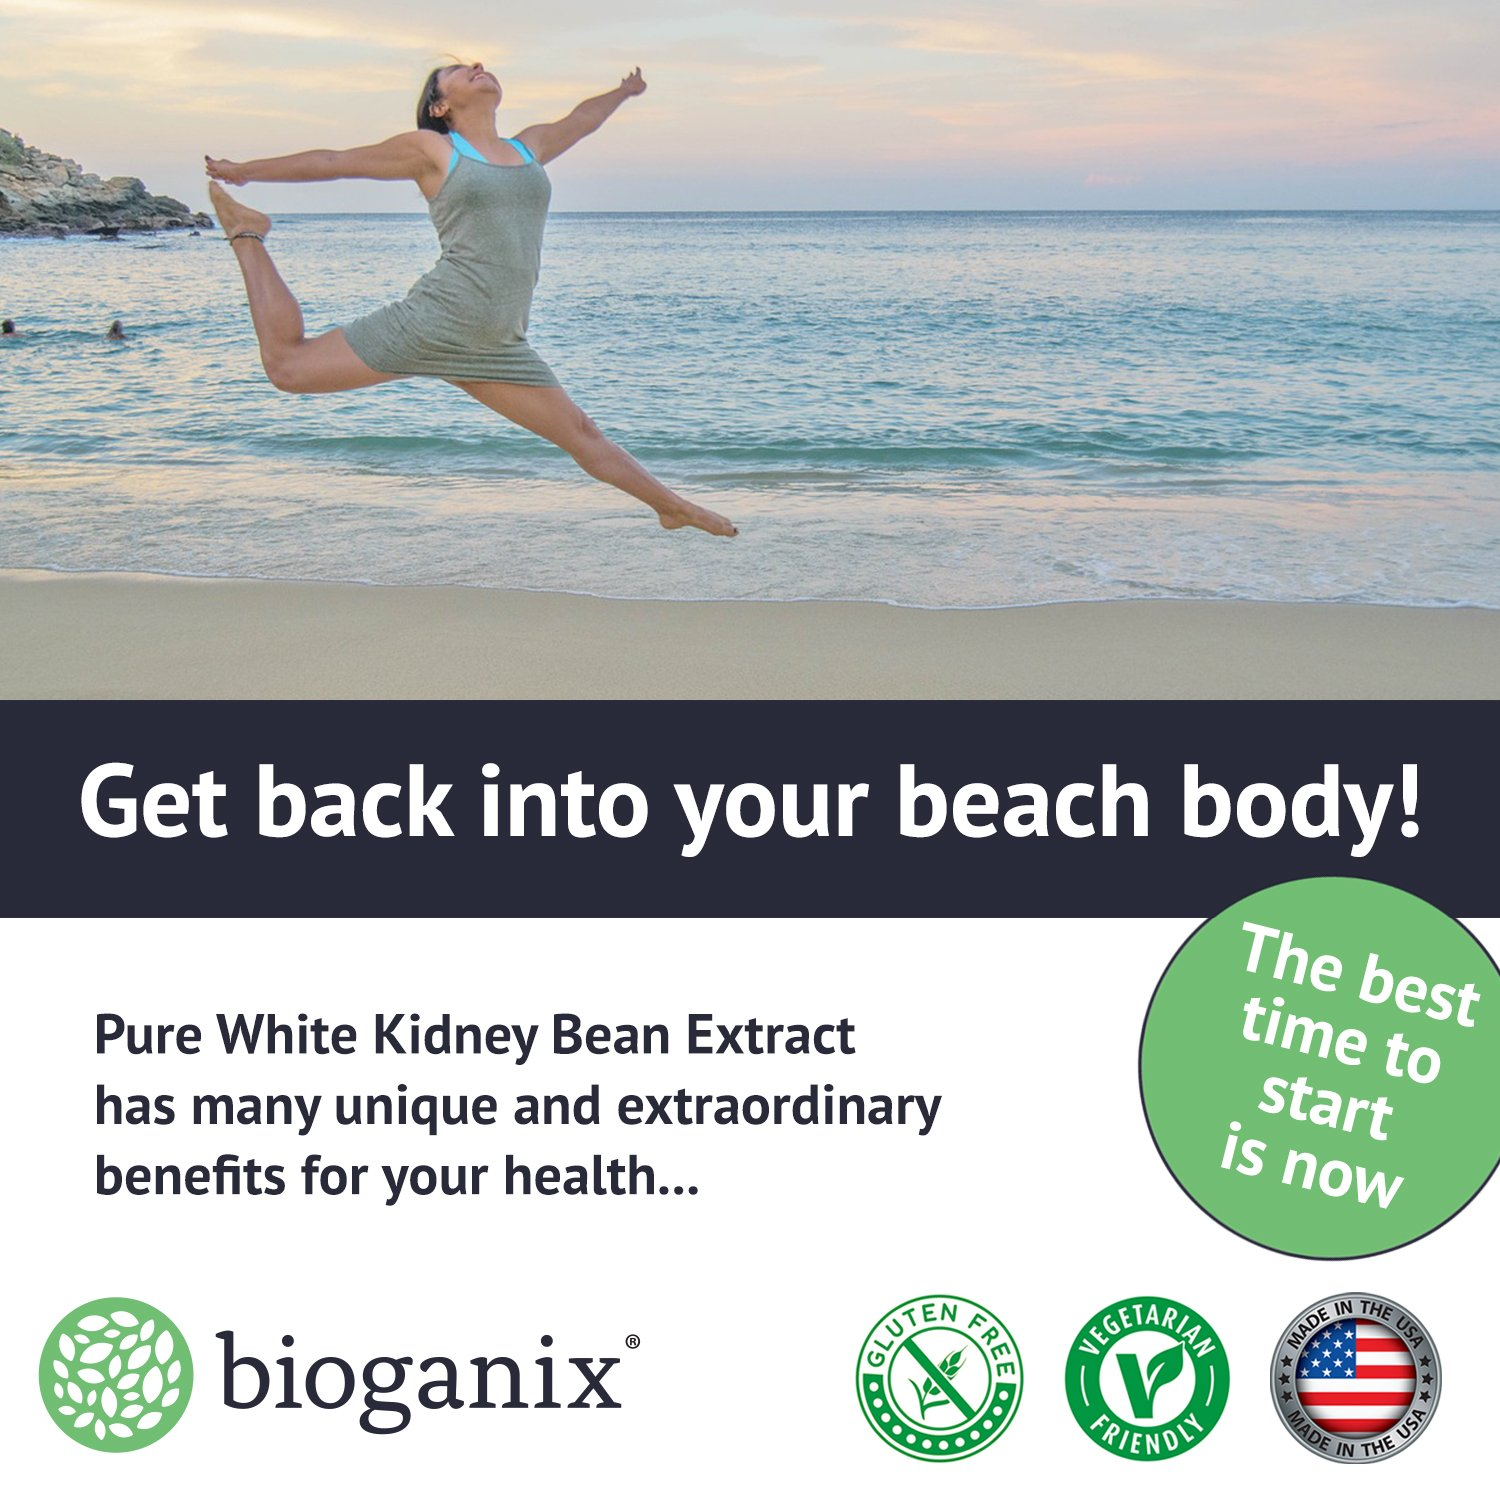 BioGanix Weight Loss Supplement with Pure White Kidney Bean Extract, Phase 2 Carb and Fat Blocker, 1800 mg, 60 Capsules